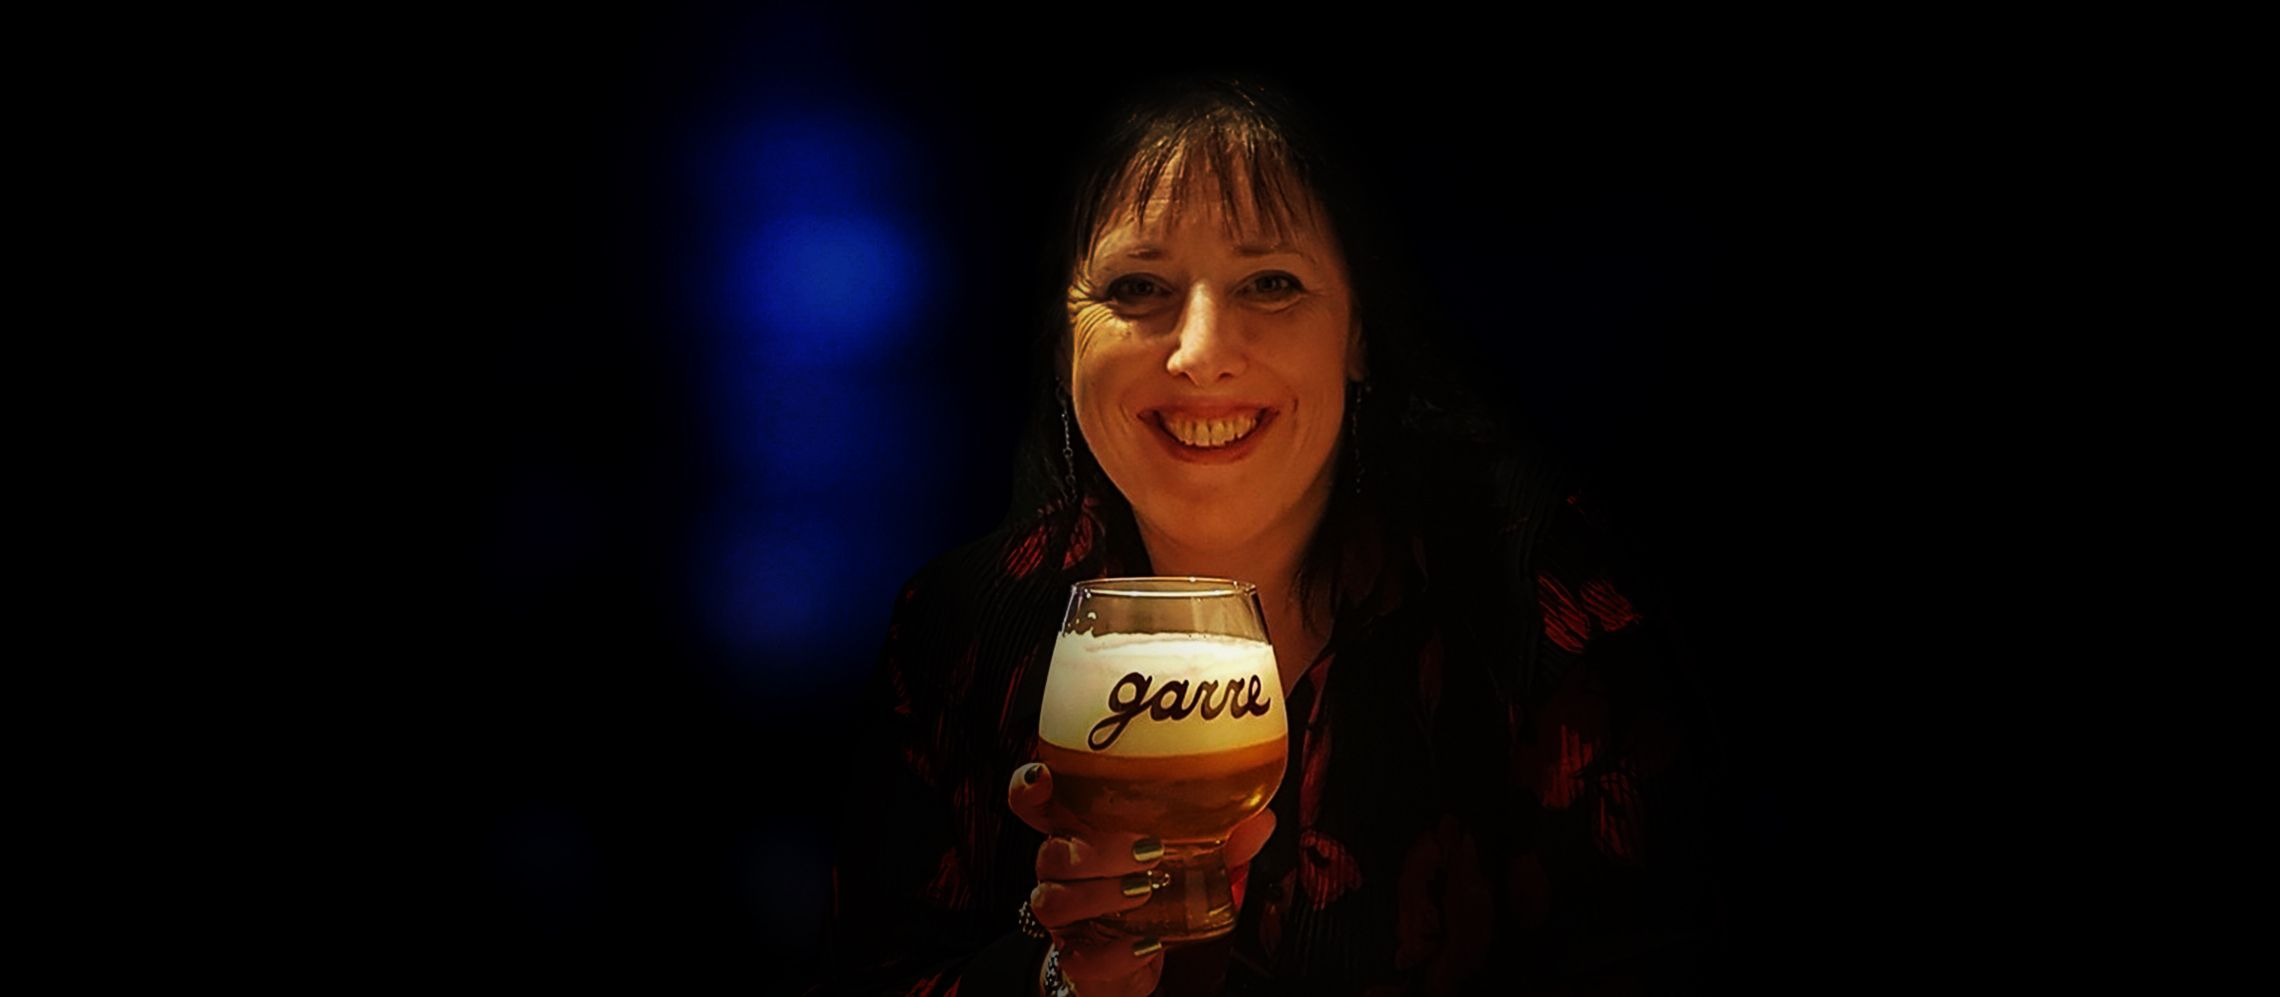 Photo for: Cheryl Cade – Member, Guild of Beer Writers